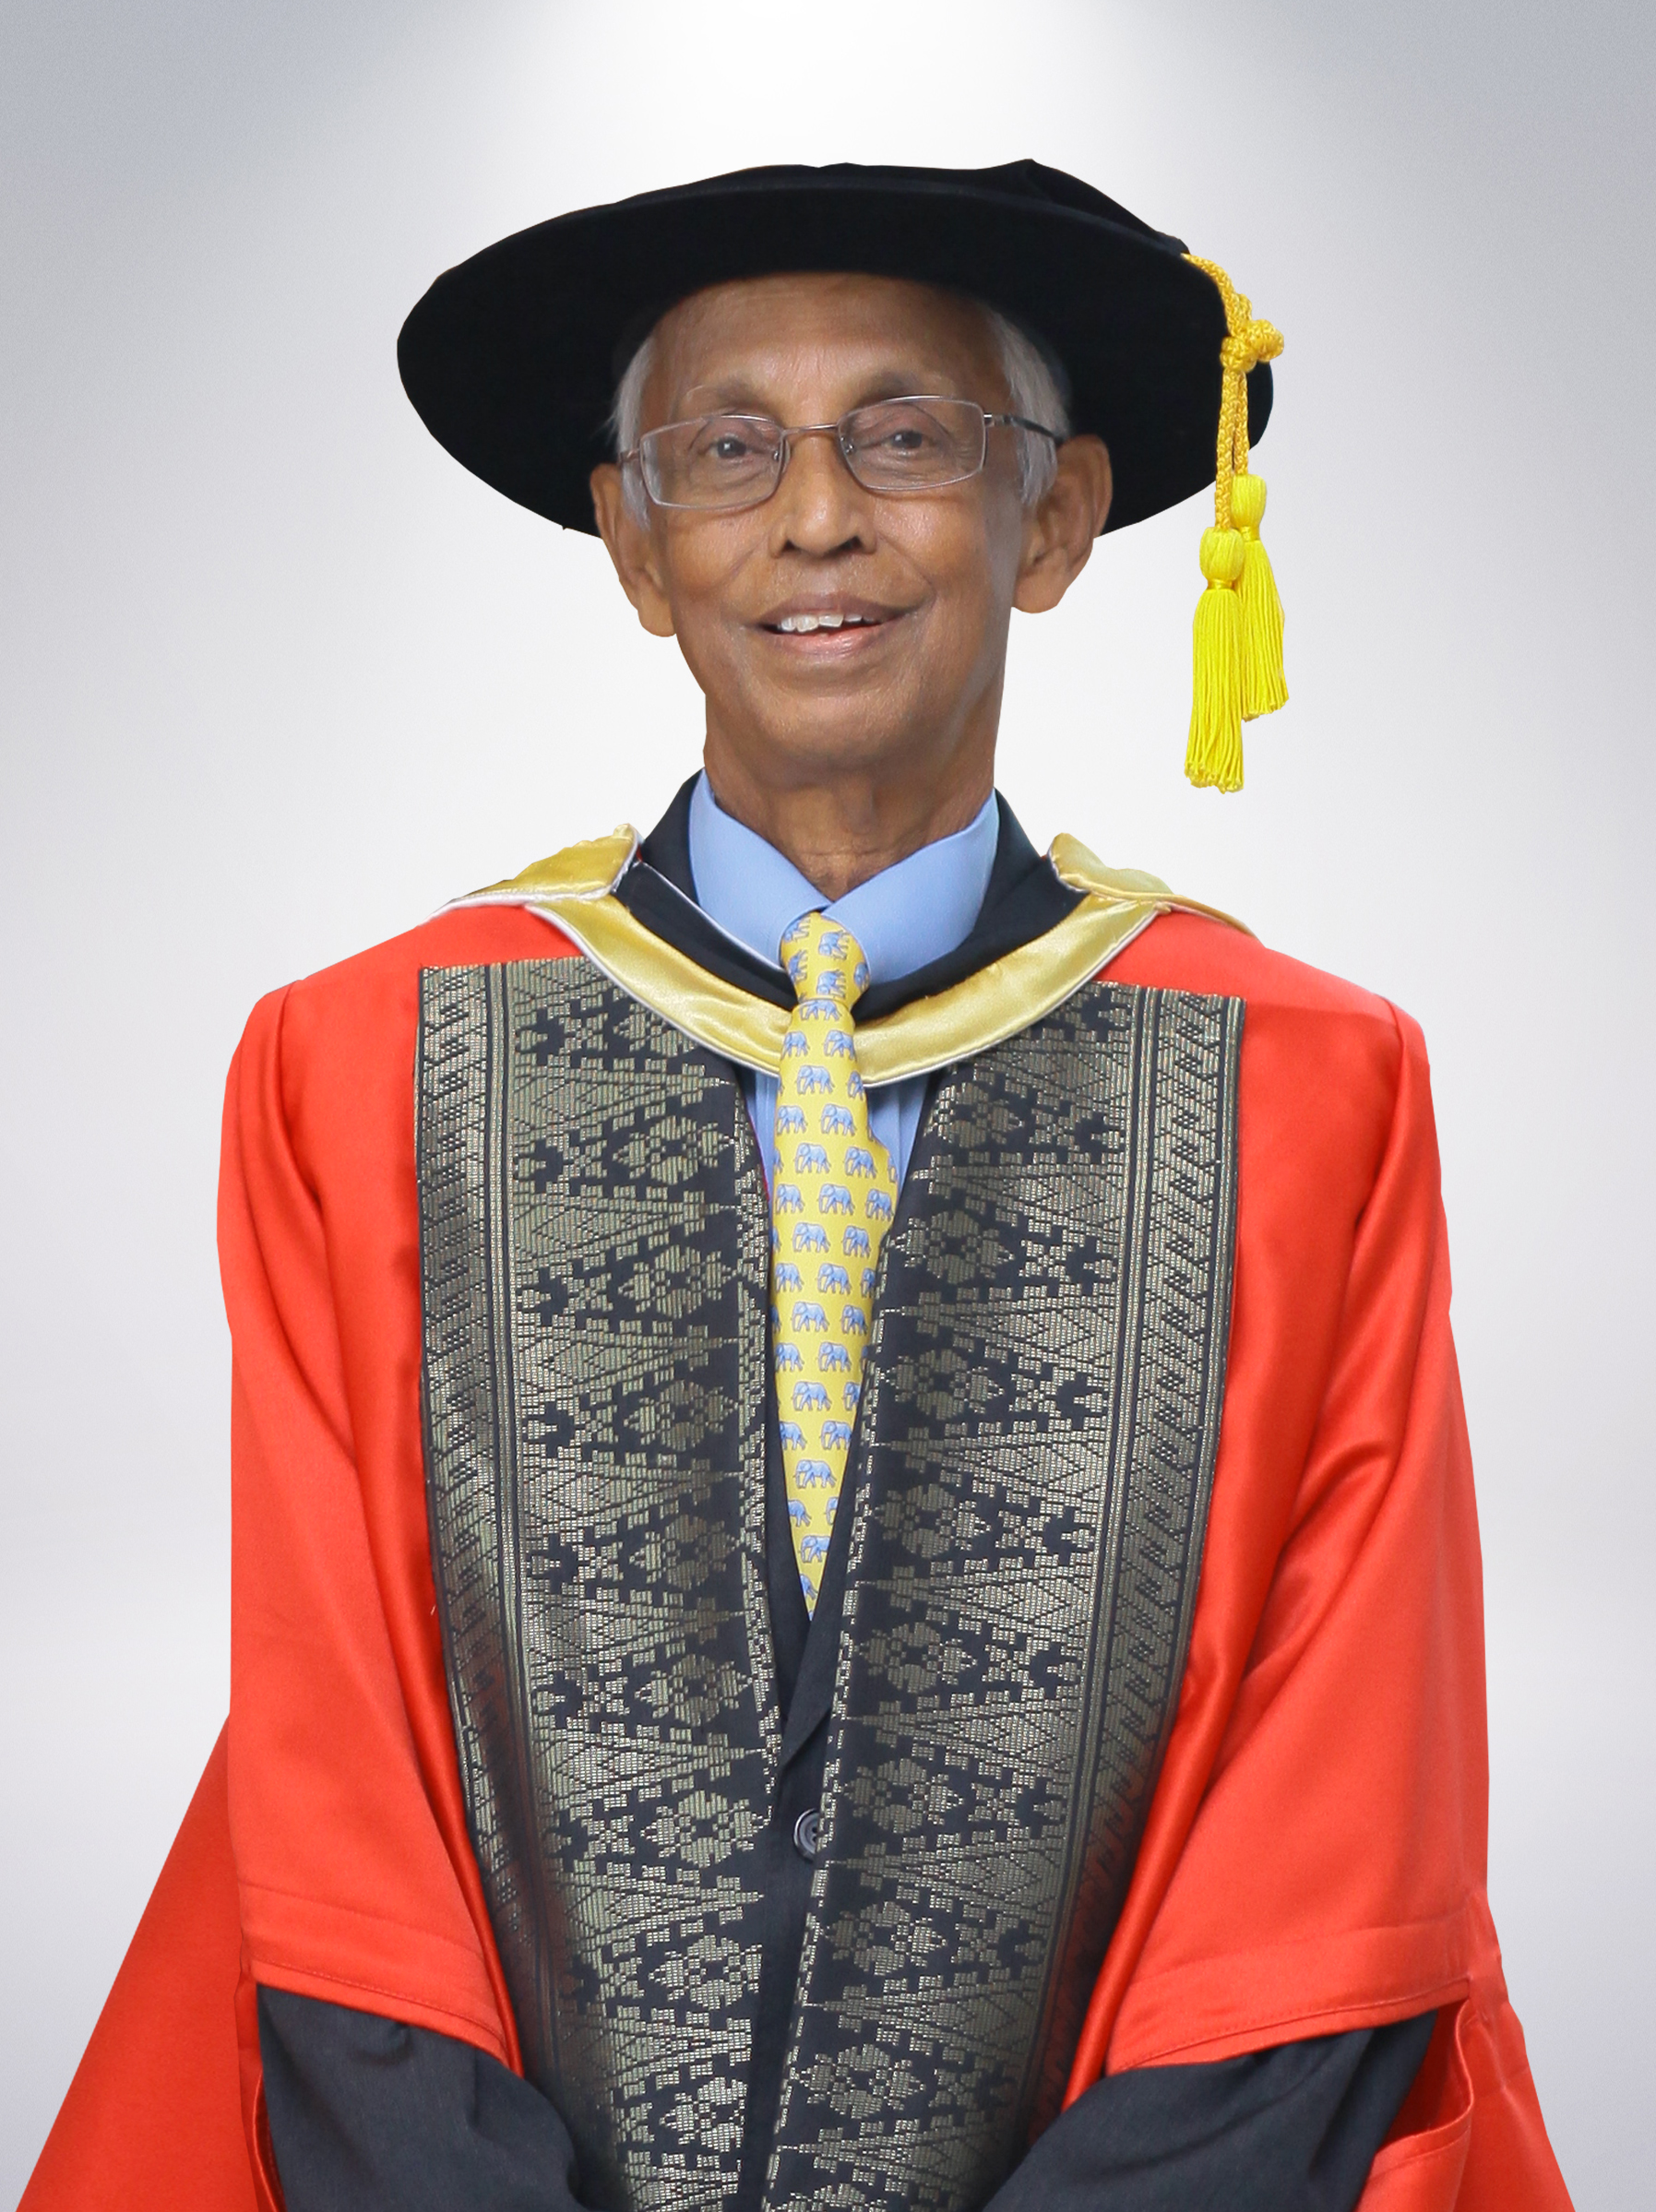 Tan sri emeritus prof gajaraj dhanarajan - doctor of education